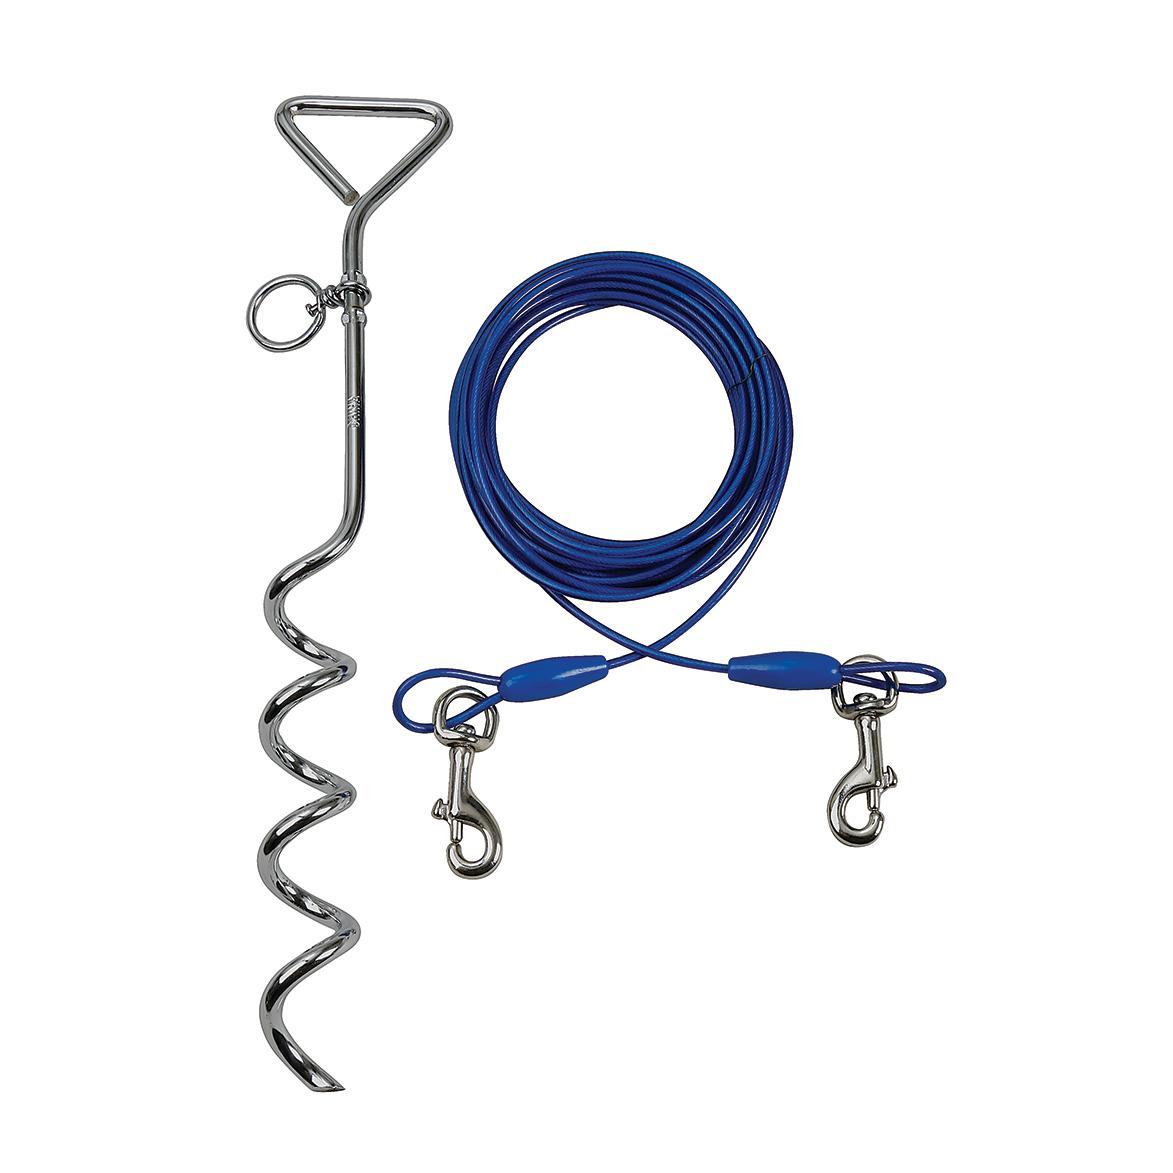 Smart Pet Love Simply Essential Dog Tie Out Cable, Small